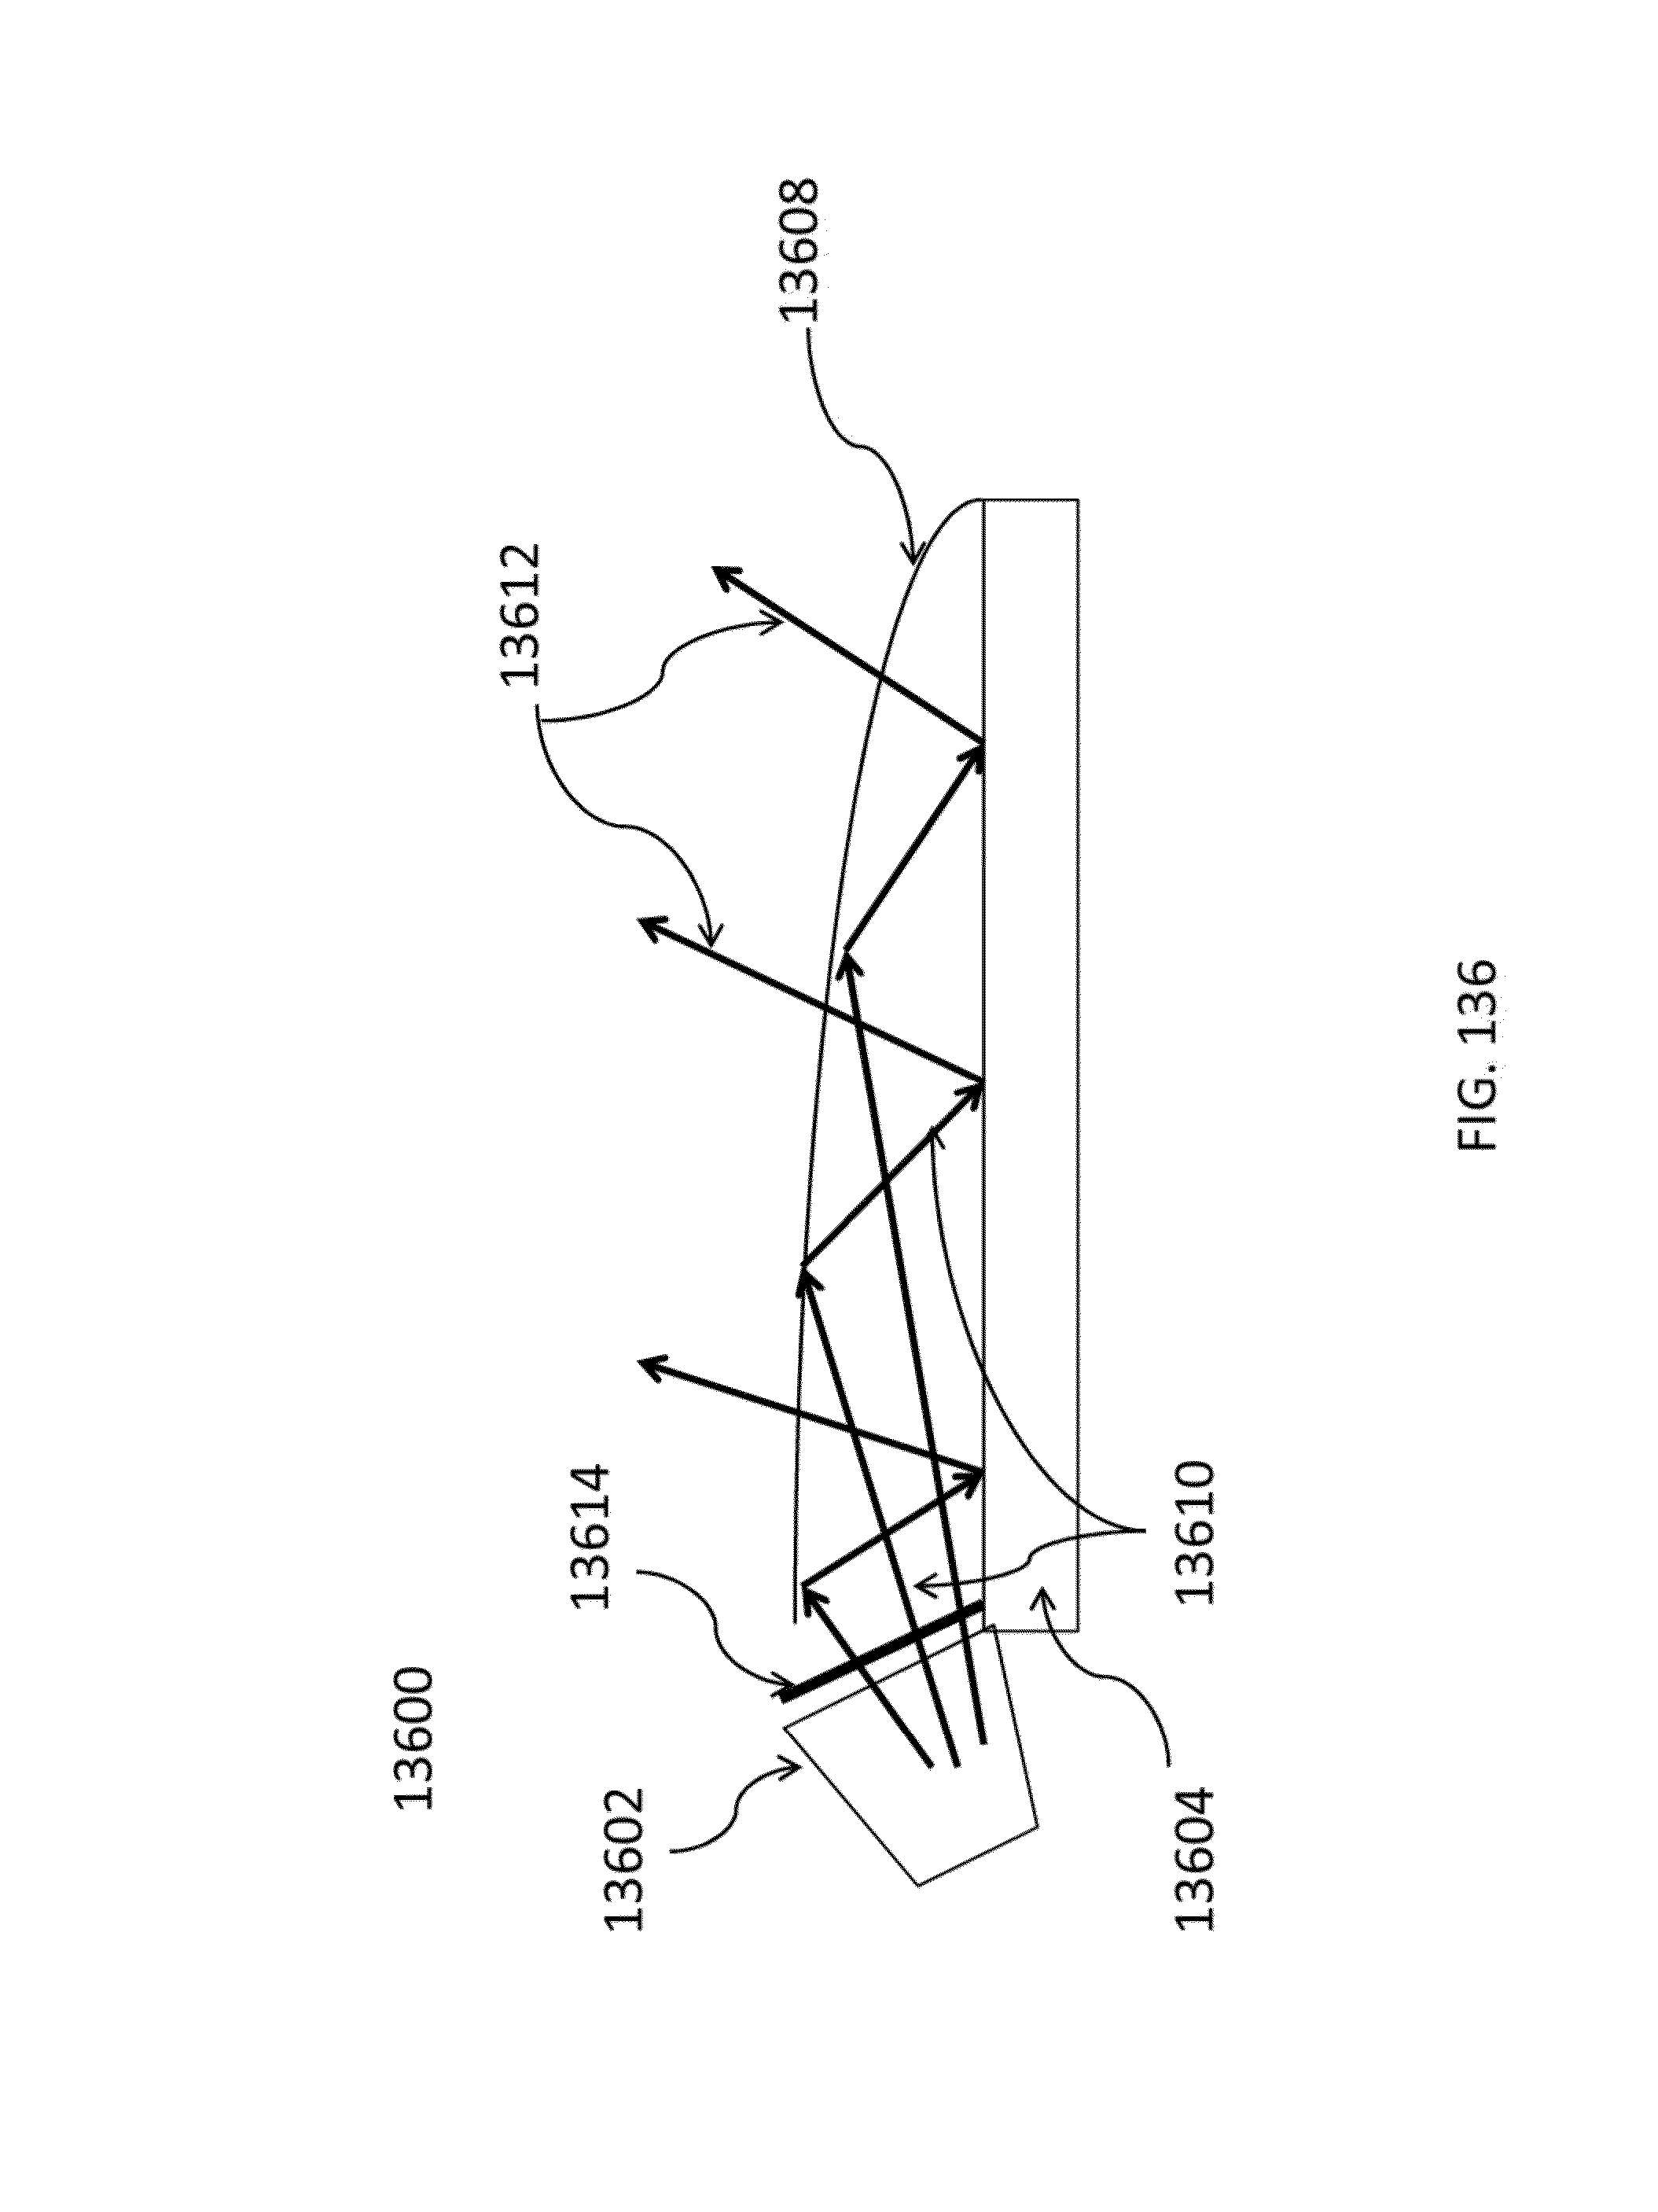 patent us 8 964 298 b2 Carrier Wiring Diagram patent images